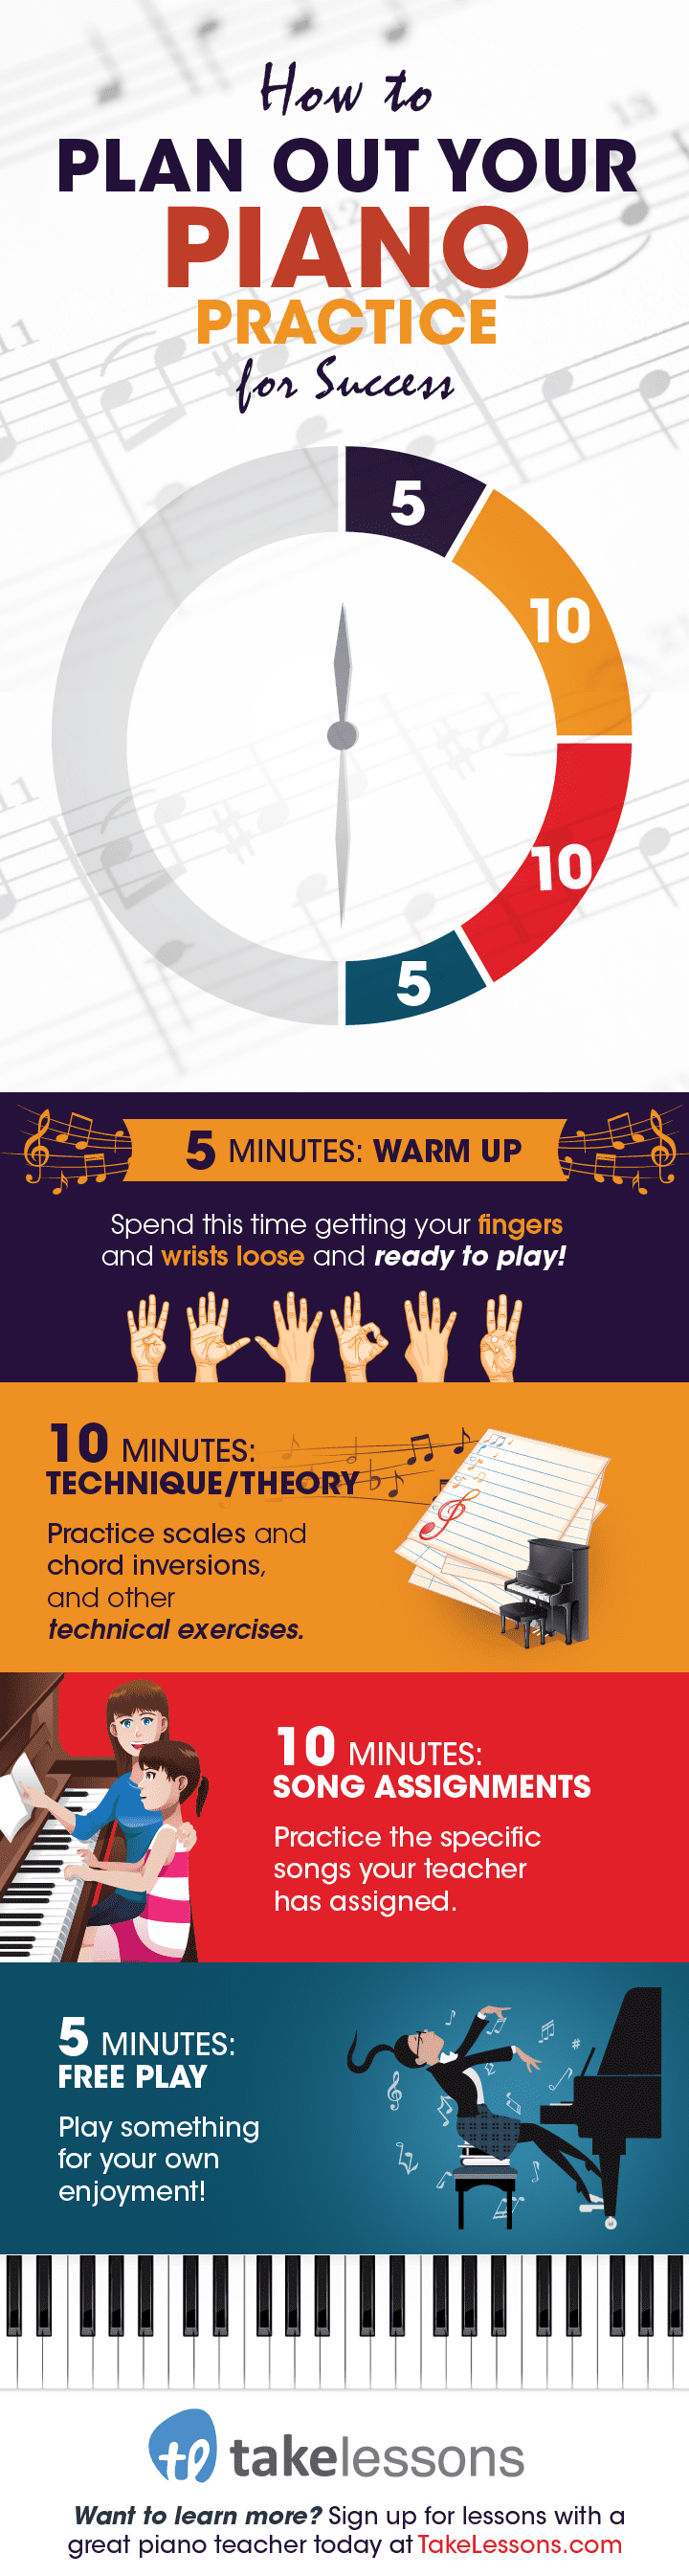 Infographic: How to Practice Piano for Your Best Results